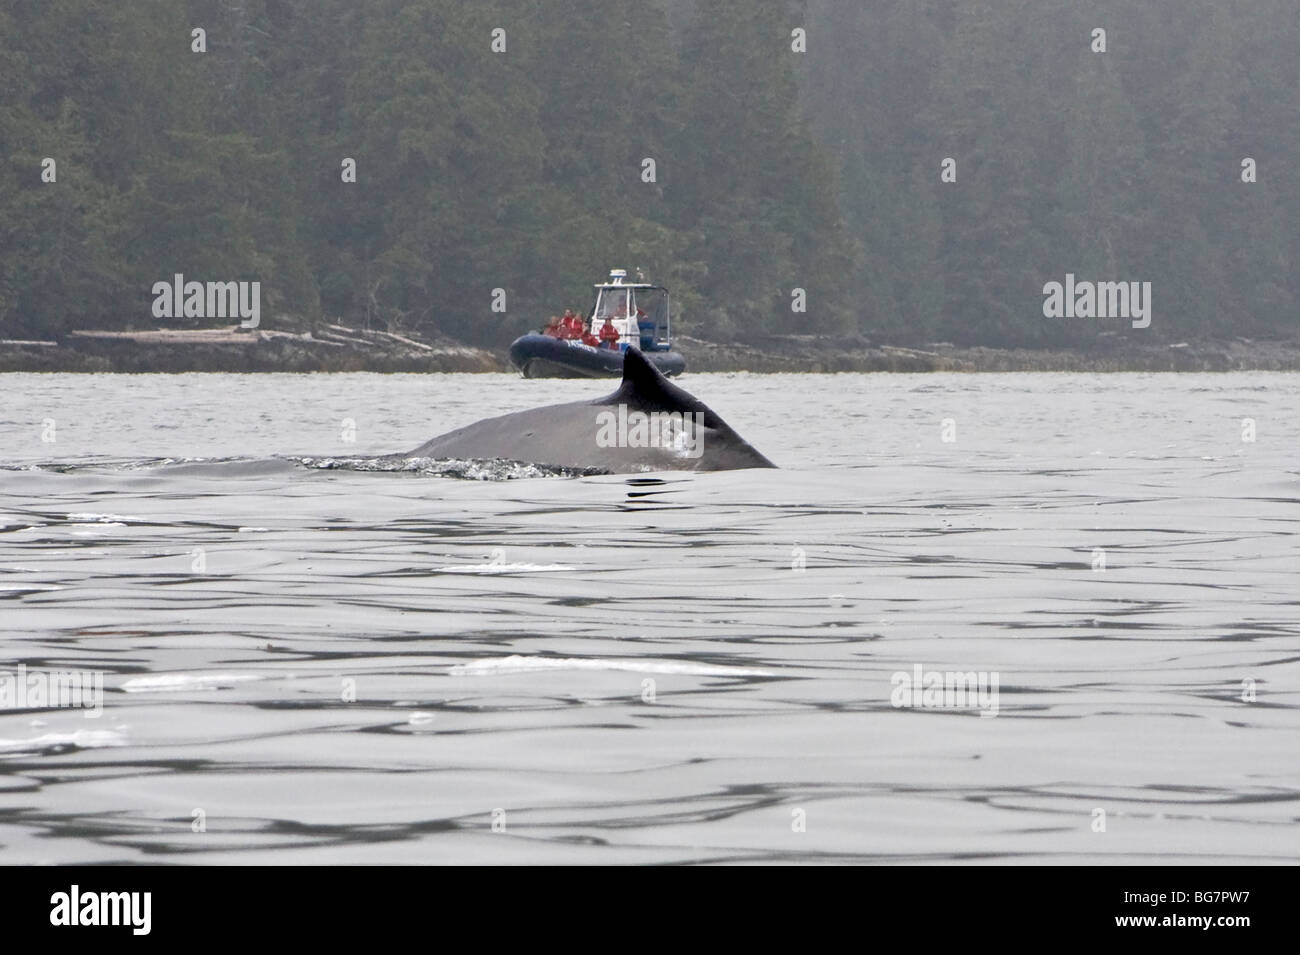 Whale watching boat approaches as humpback whale (Megaptera novaeangliae) surfaces off Vancouver Island, Canada Stock Photo